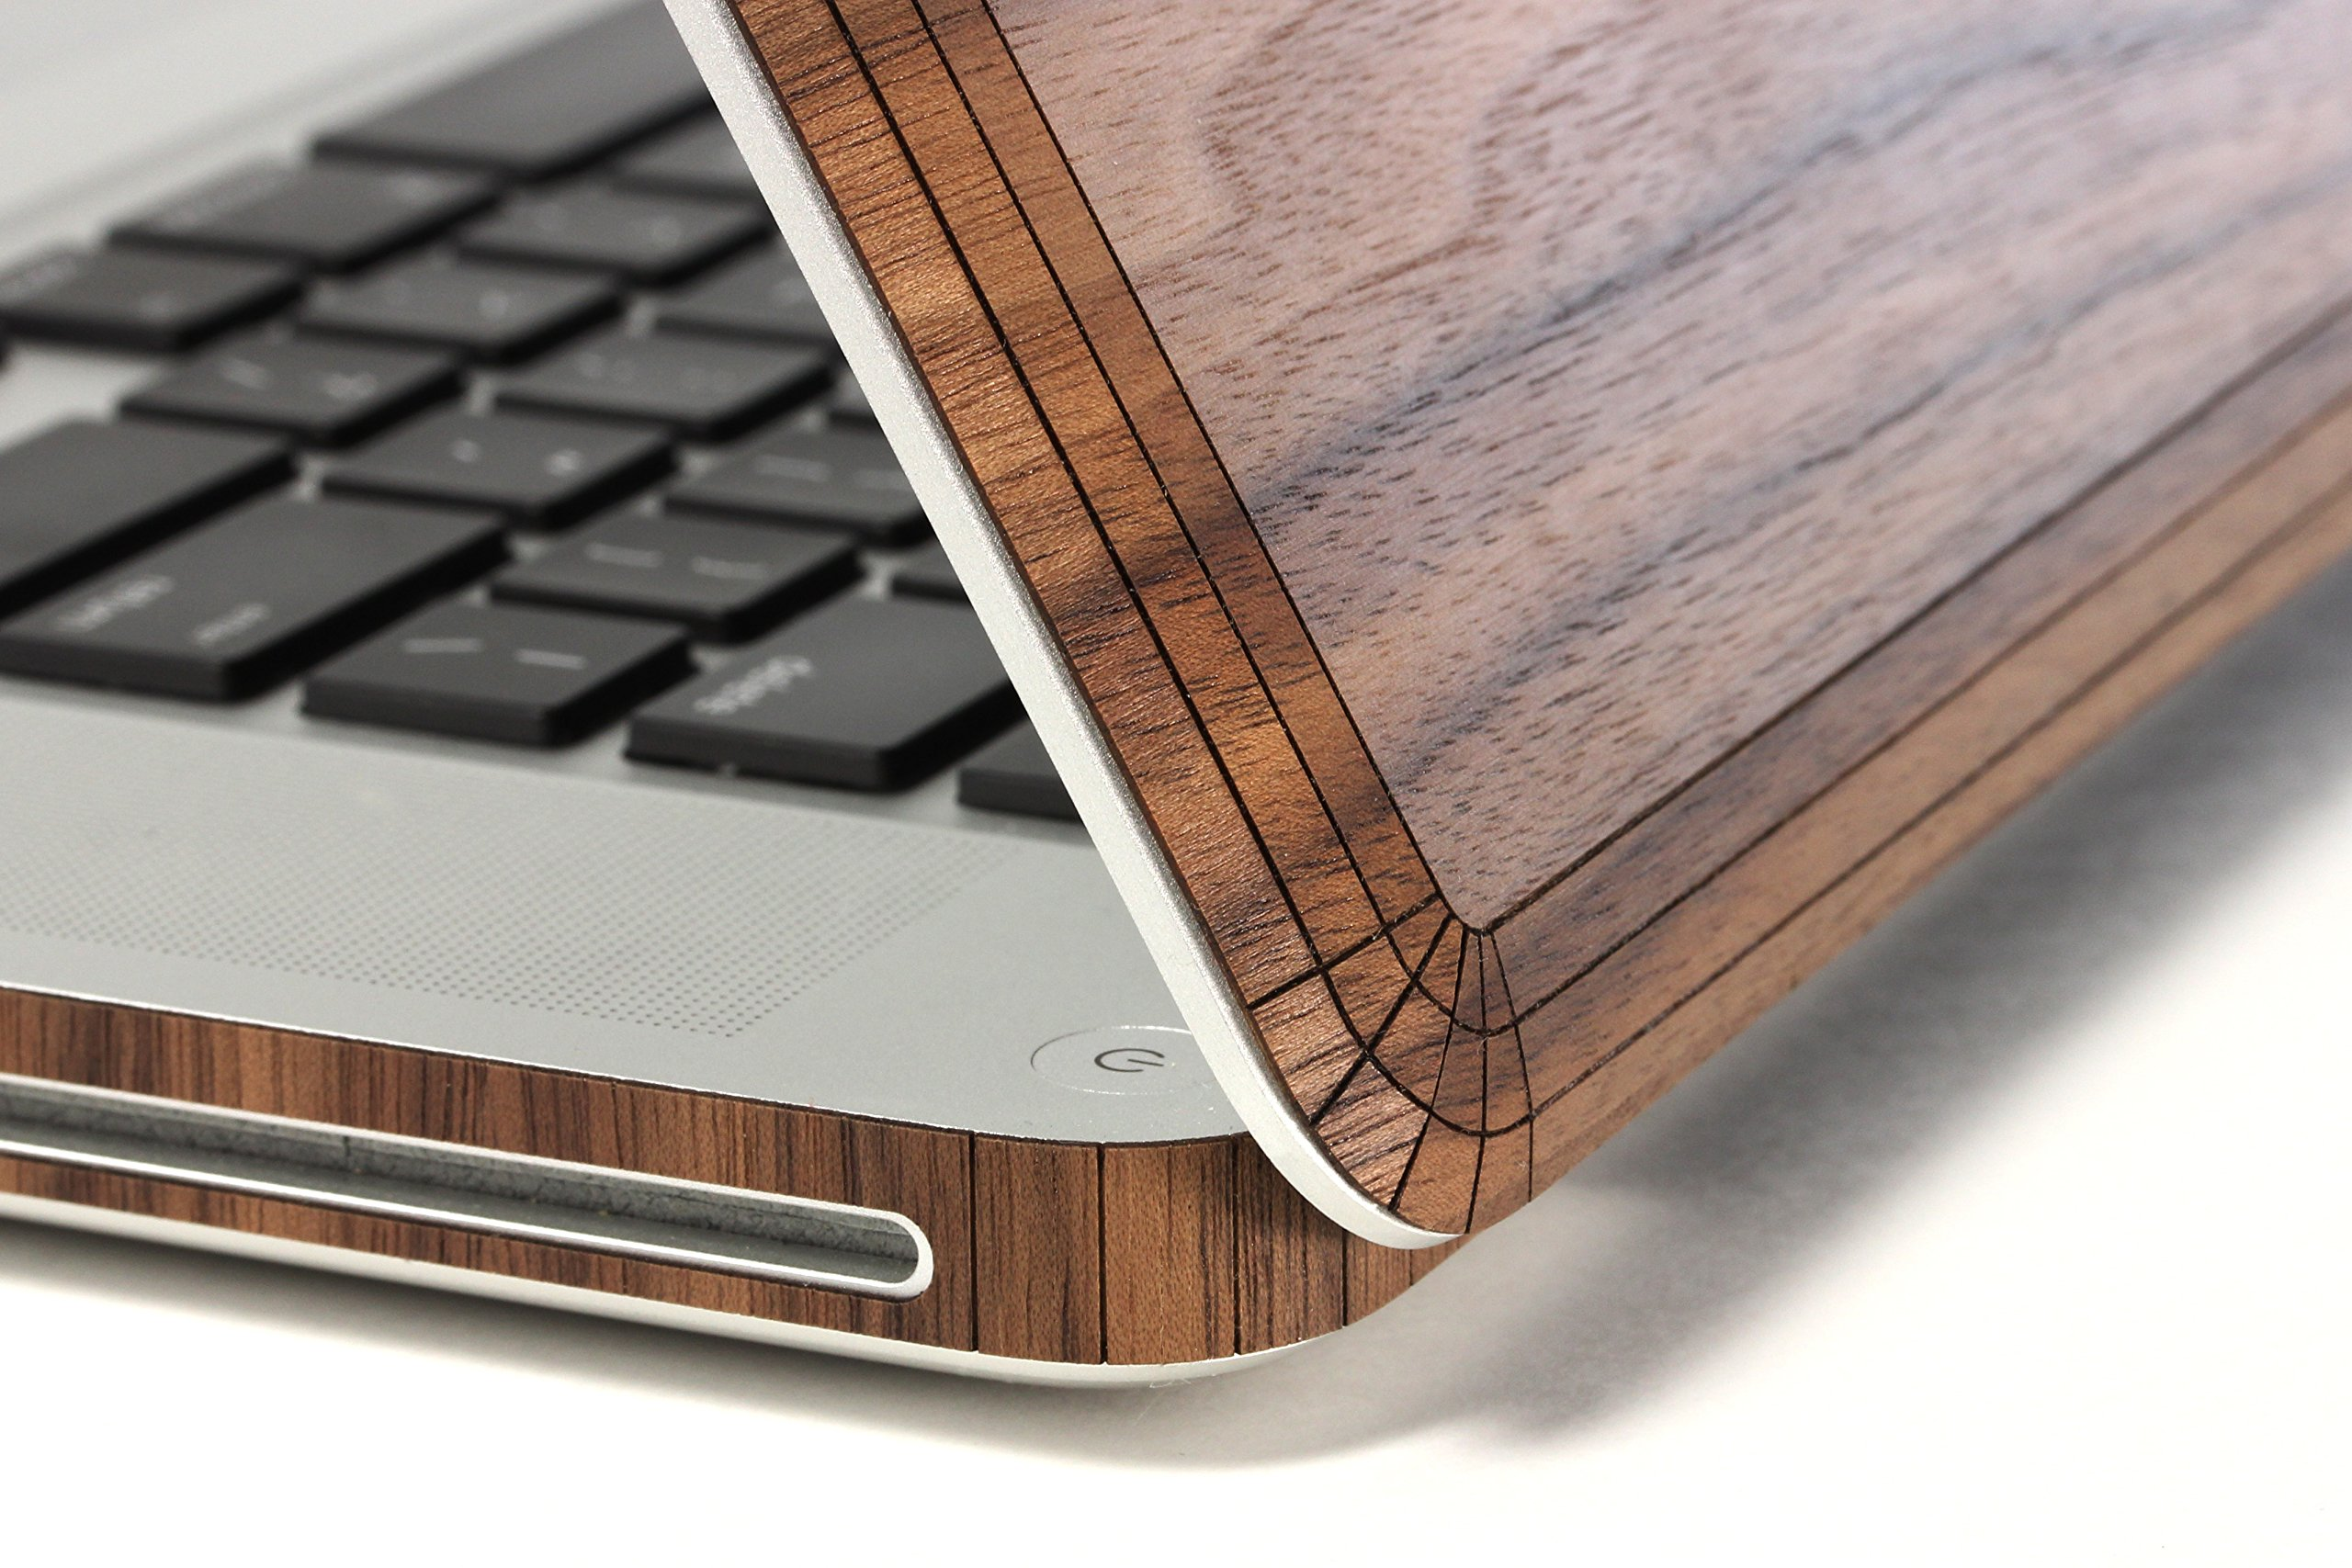 TOAST Real Wood Walnut Cover for MacBook Pro 15-Inch Non-Retina Version (MBPR-15N-PLA-01-COM) by Toast (Image #3)